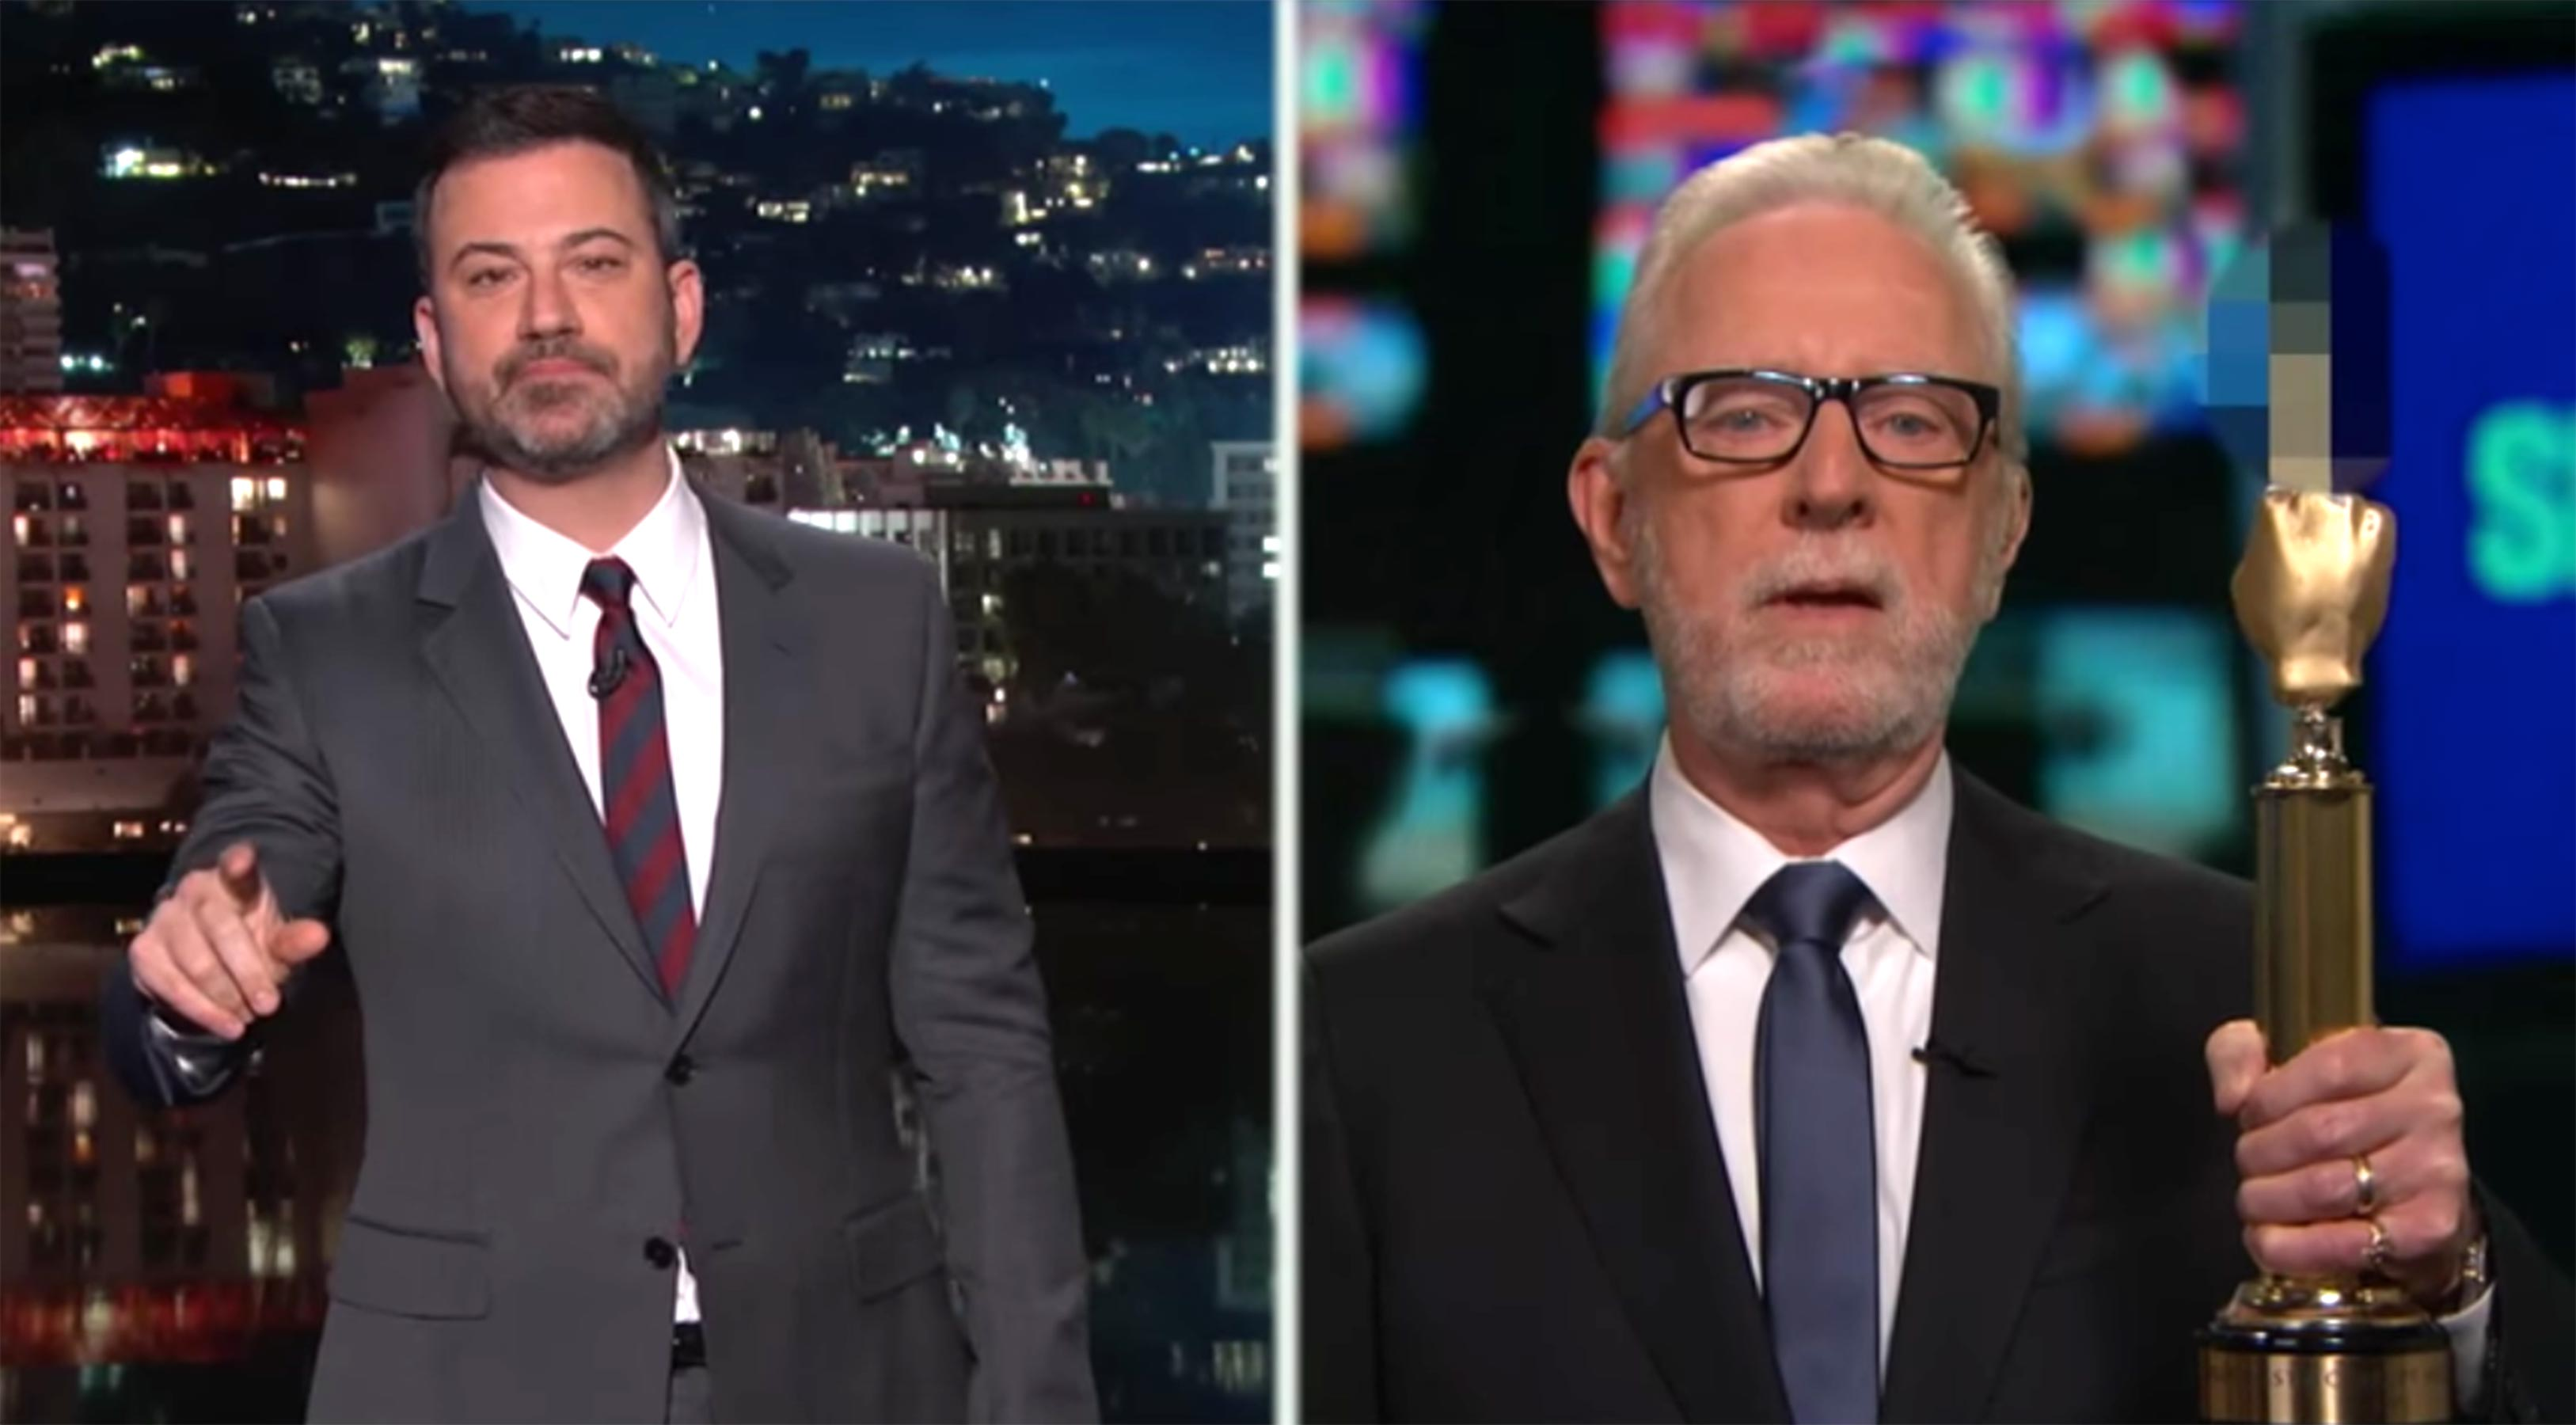 Trump Fake News awards: Wolf Blitzer accepts on Jimmy Kimmel Live